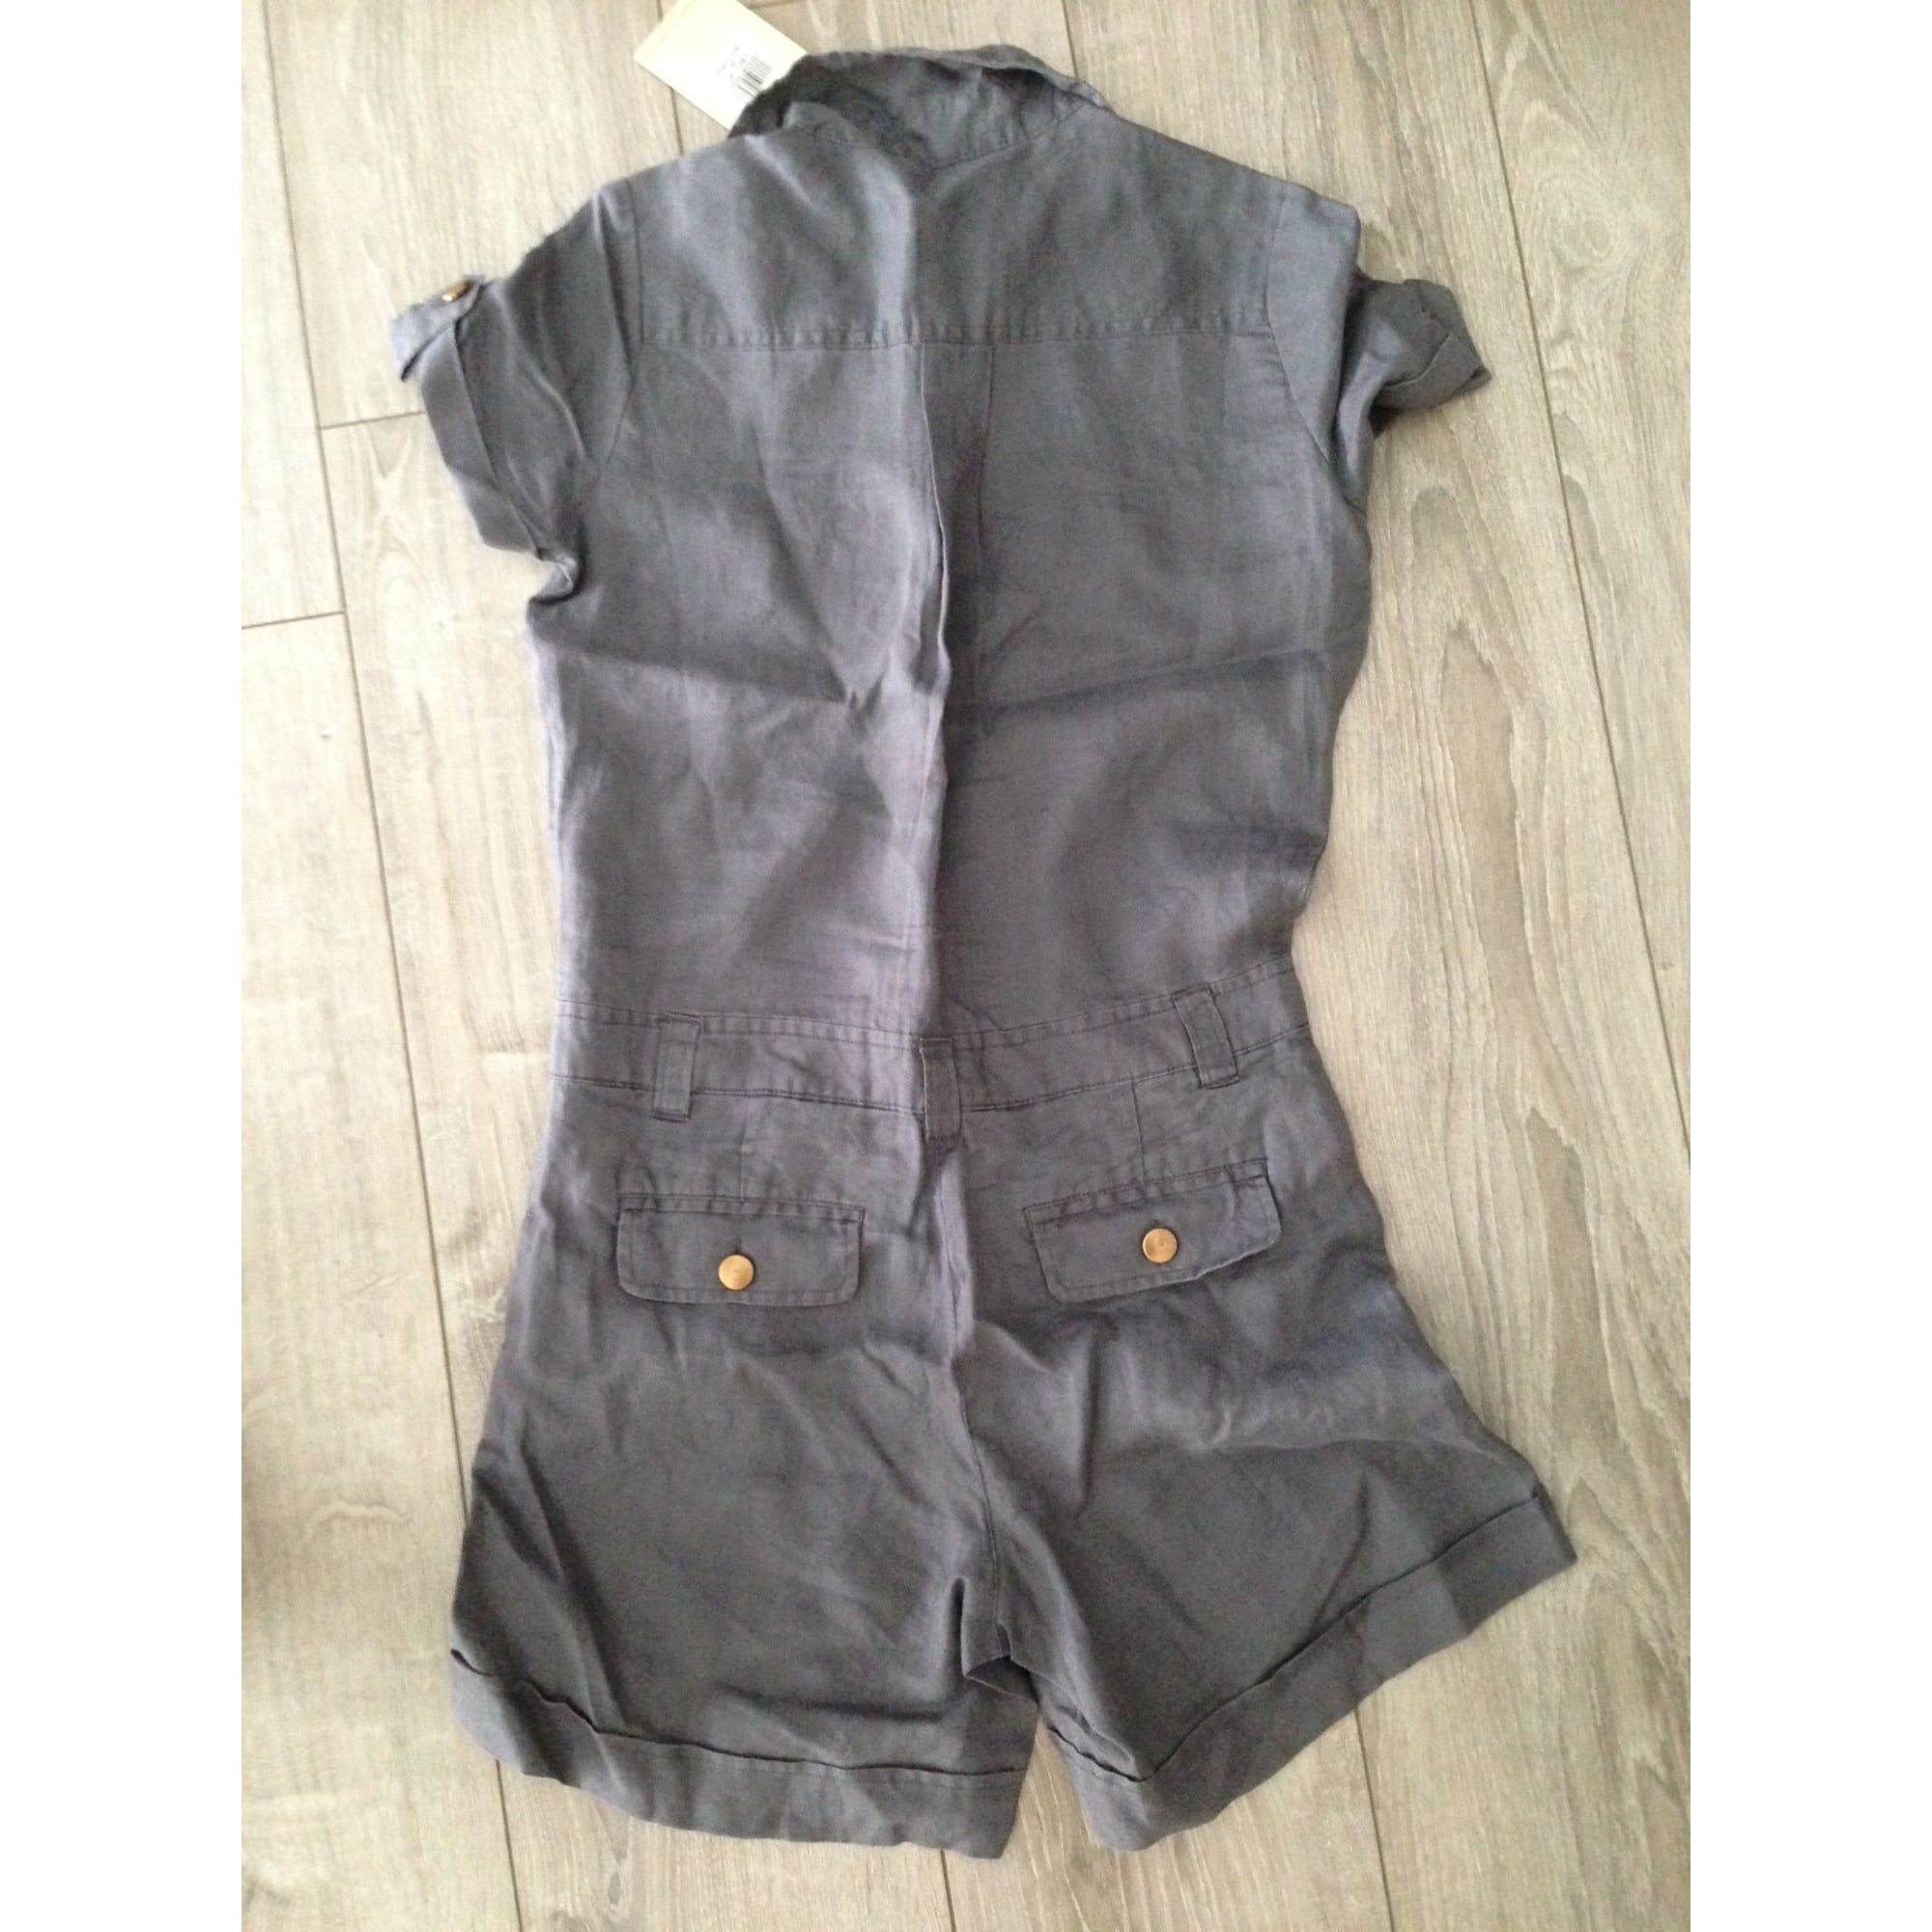 Salopette short BEST MOUNTAIN Gris, anthracite